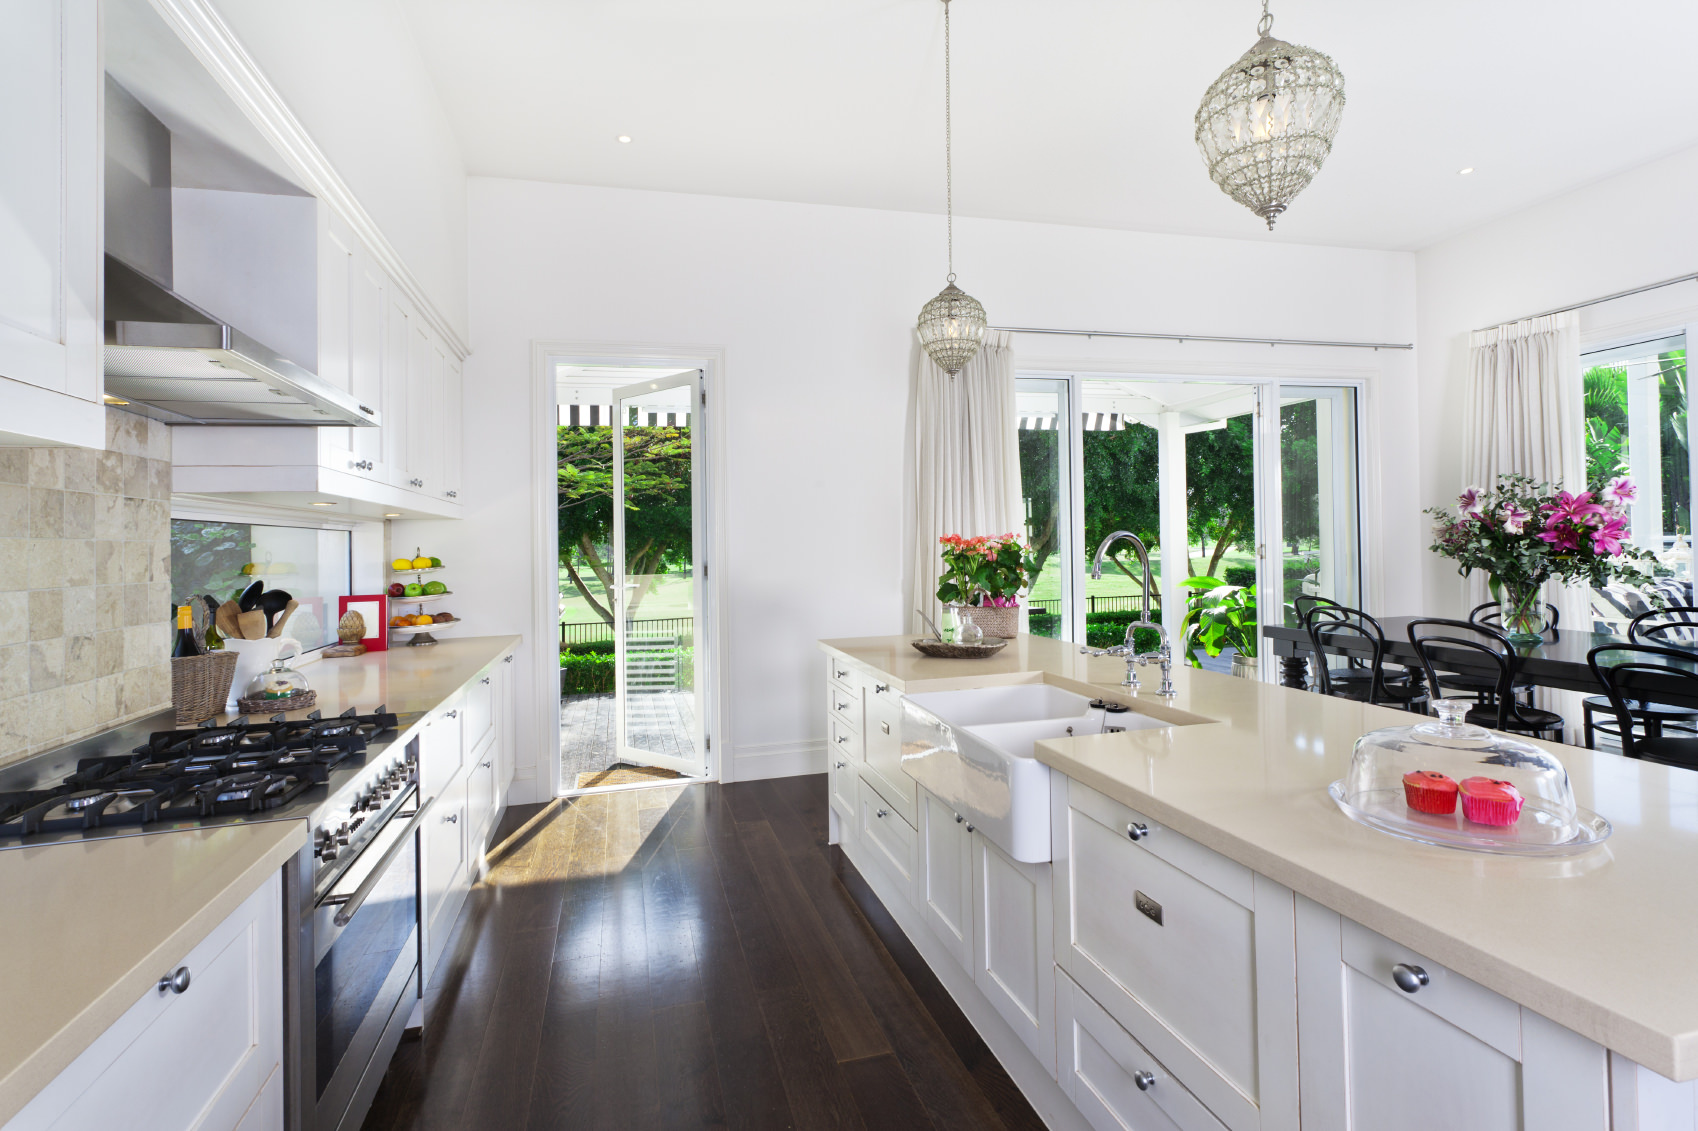 White Mediterranean kitchen with dark hardwood flooring. The beautiful greenery outside can be overlooked through the doors and windows. The center island is long and has a smooth white countertop.